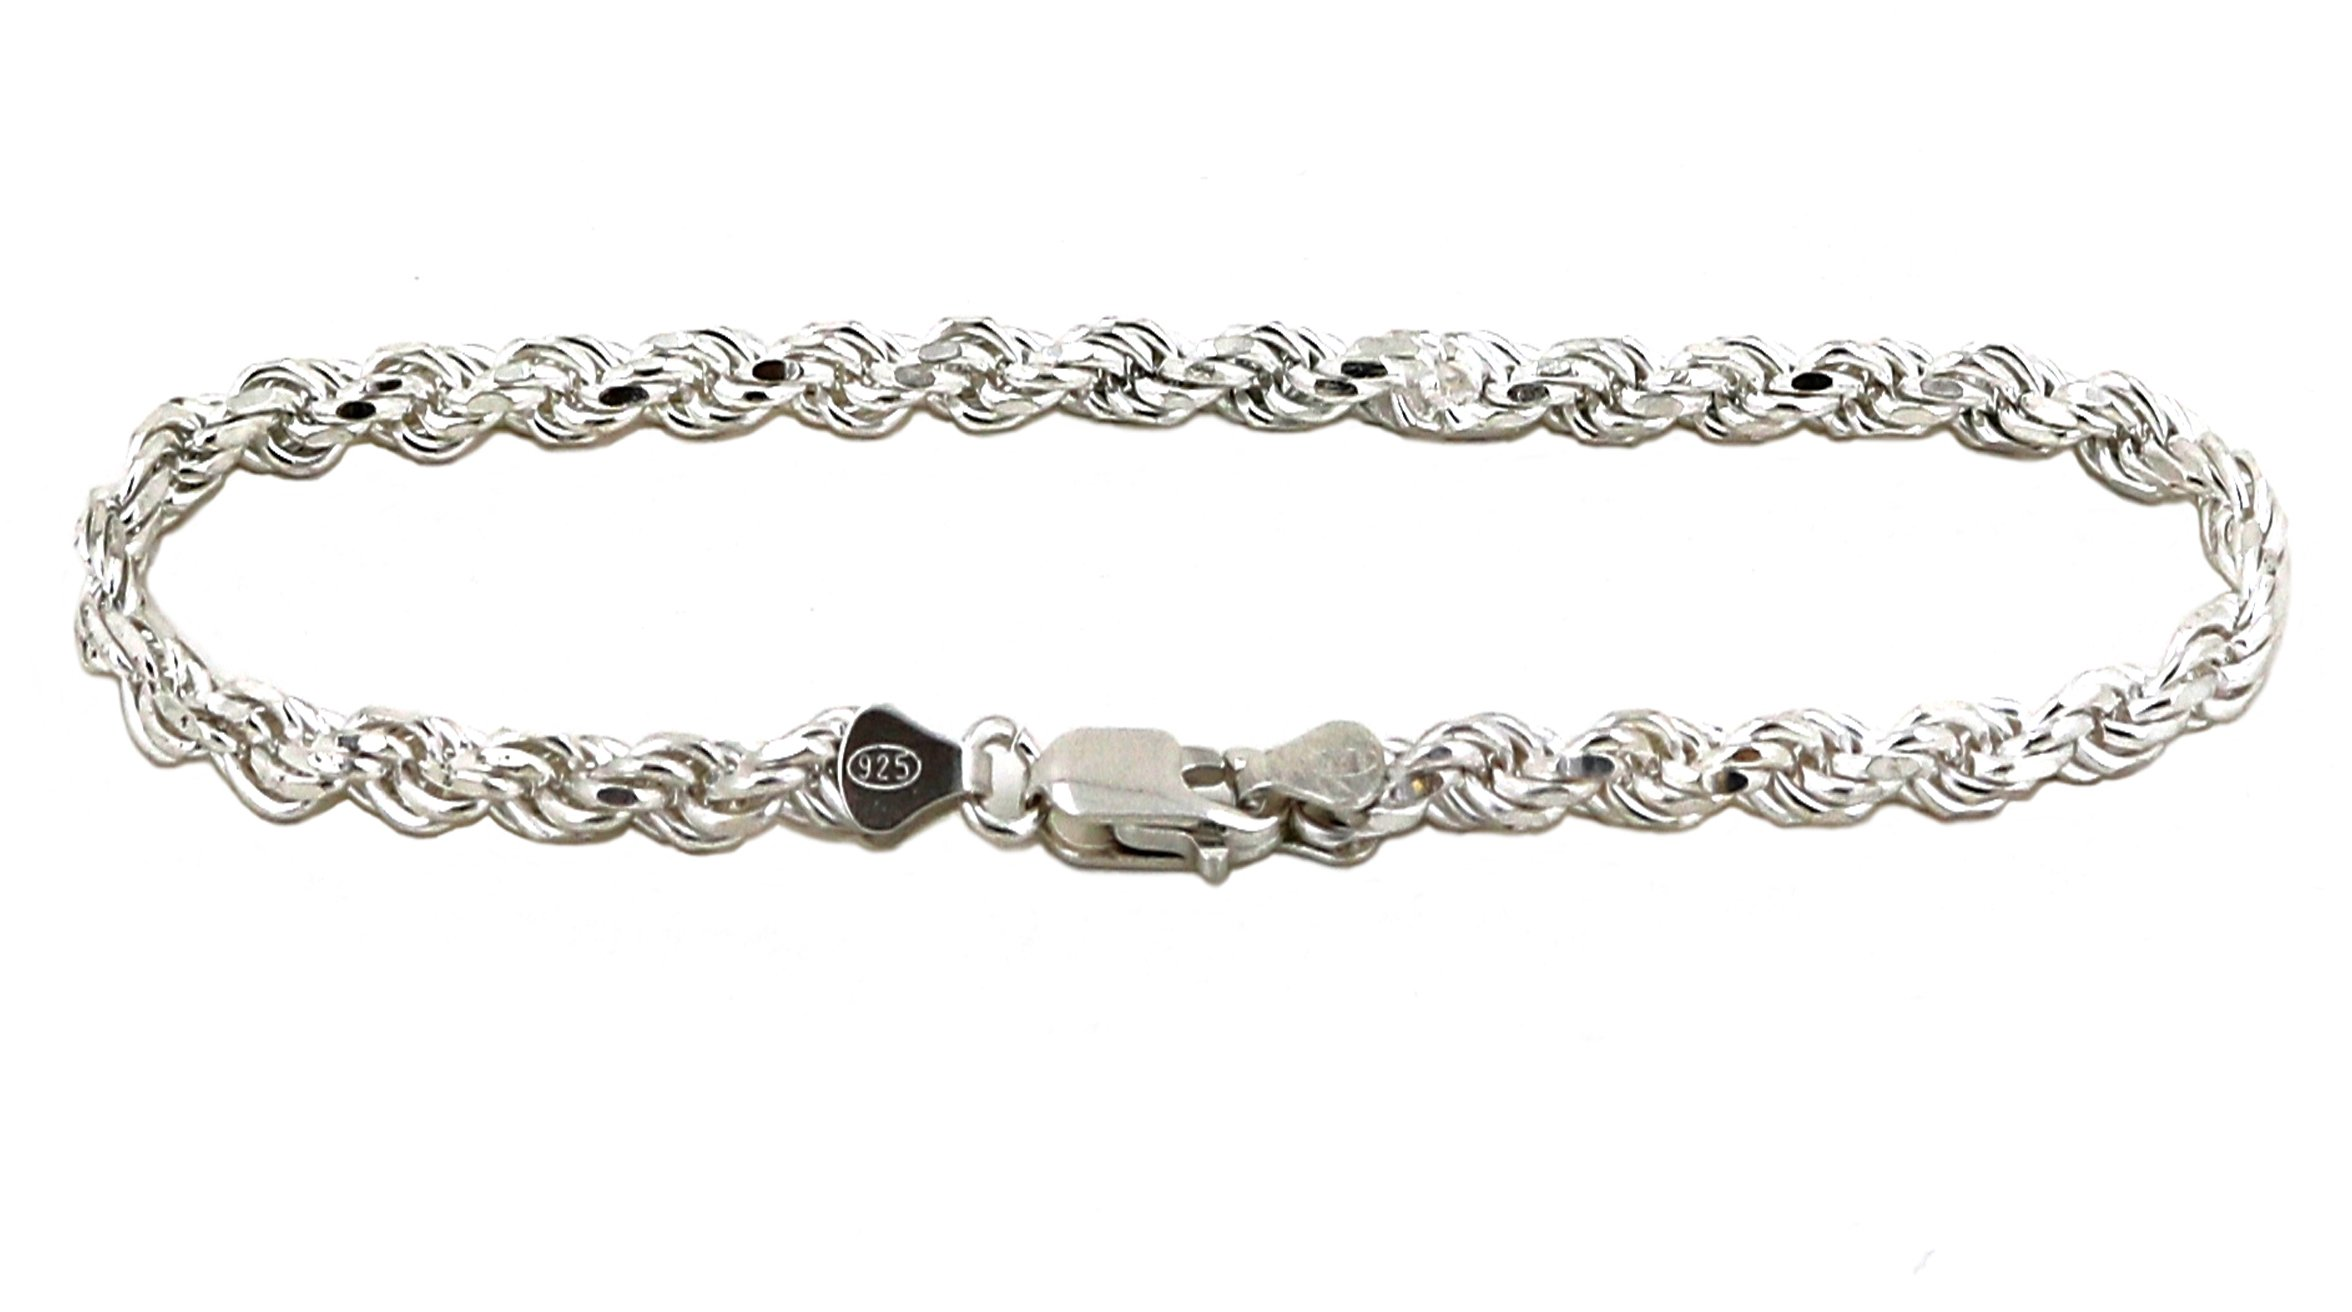 Solid 925 Sterling Silver Diamond Cut Rope Bracelet / Anklet for Men and Women 2.0mm to 6.0mm, 7'' to 10'' (3.0mm - 8'')